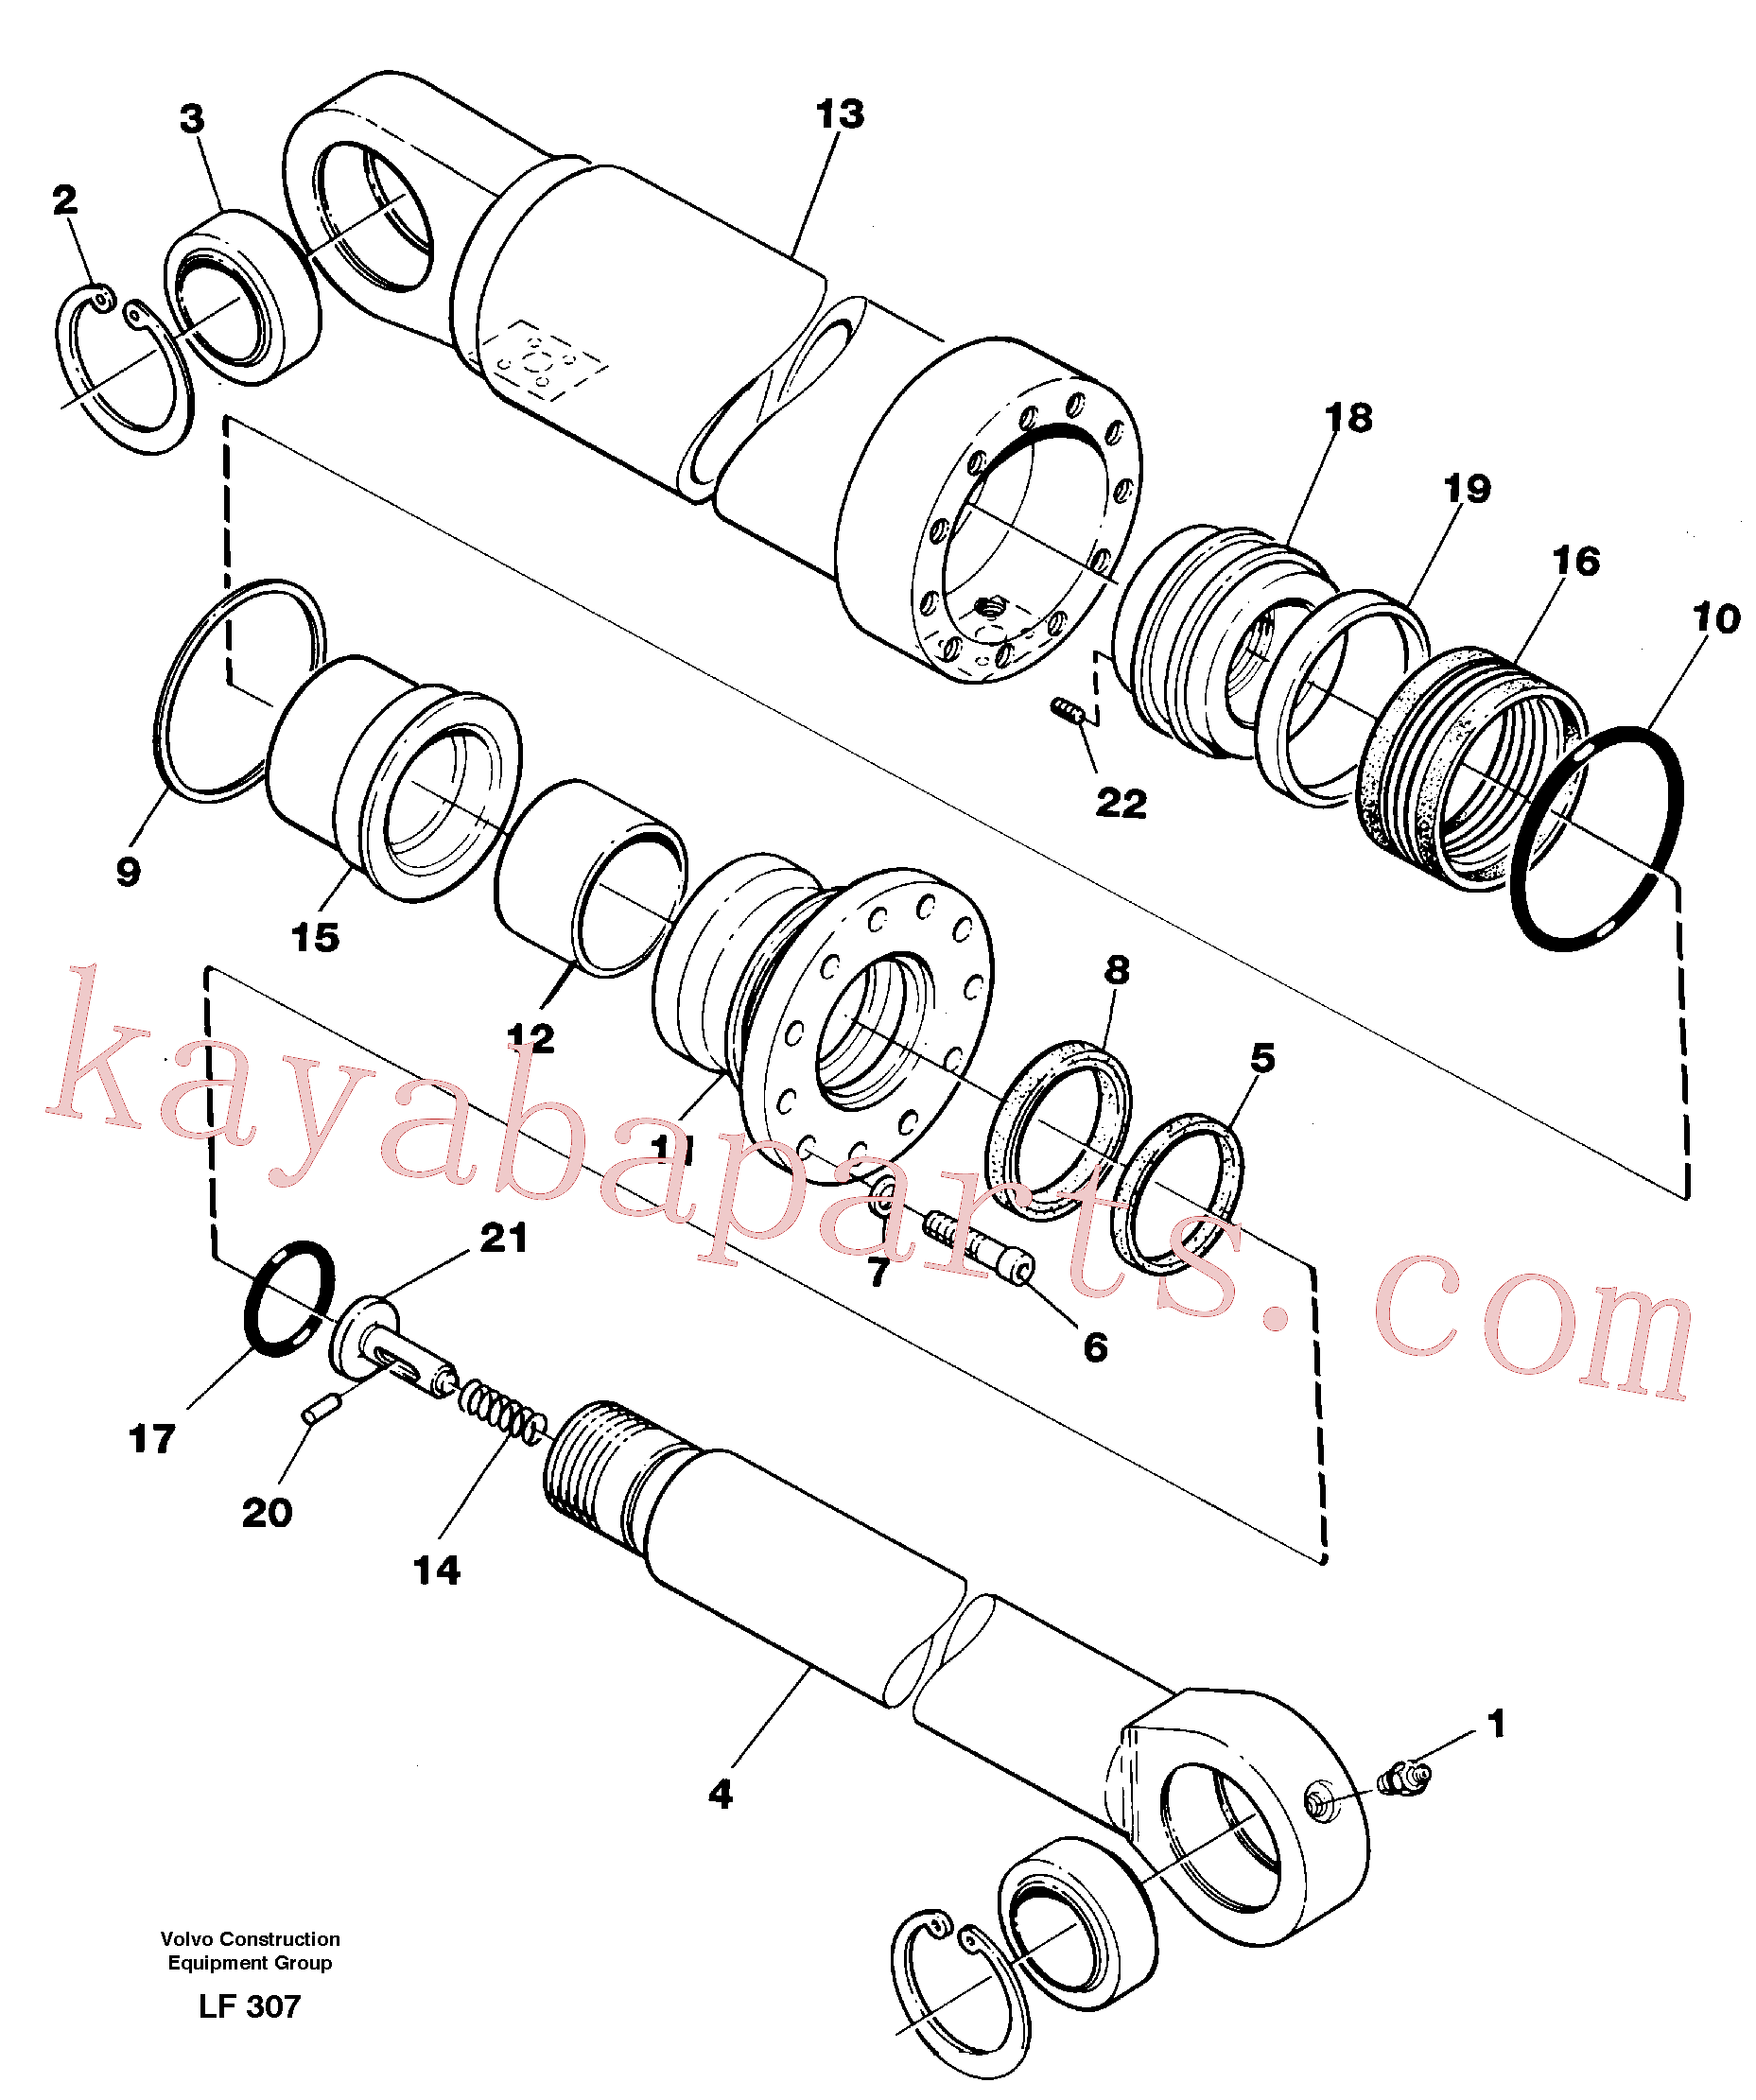 VOE11709519 for Volvo Hydraulic cylinder, stabilisor(LF307 assembly)